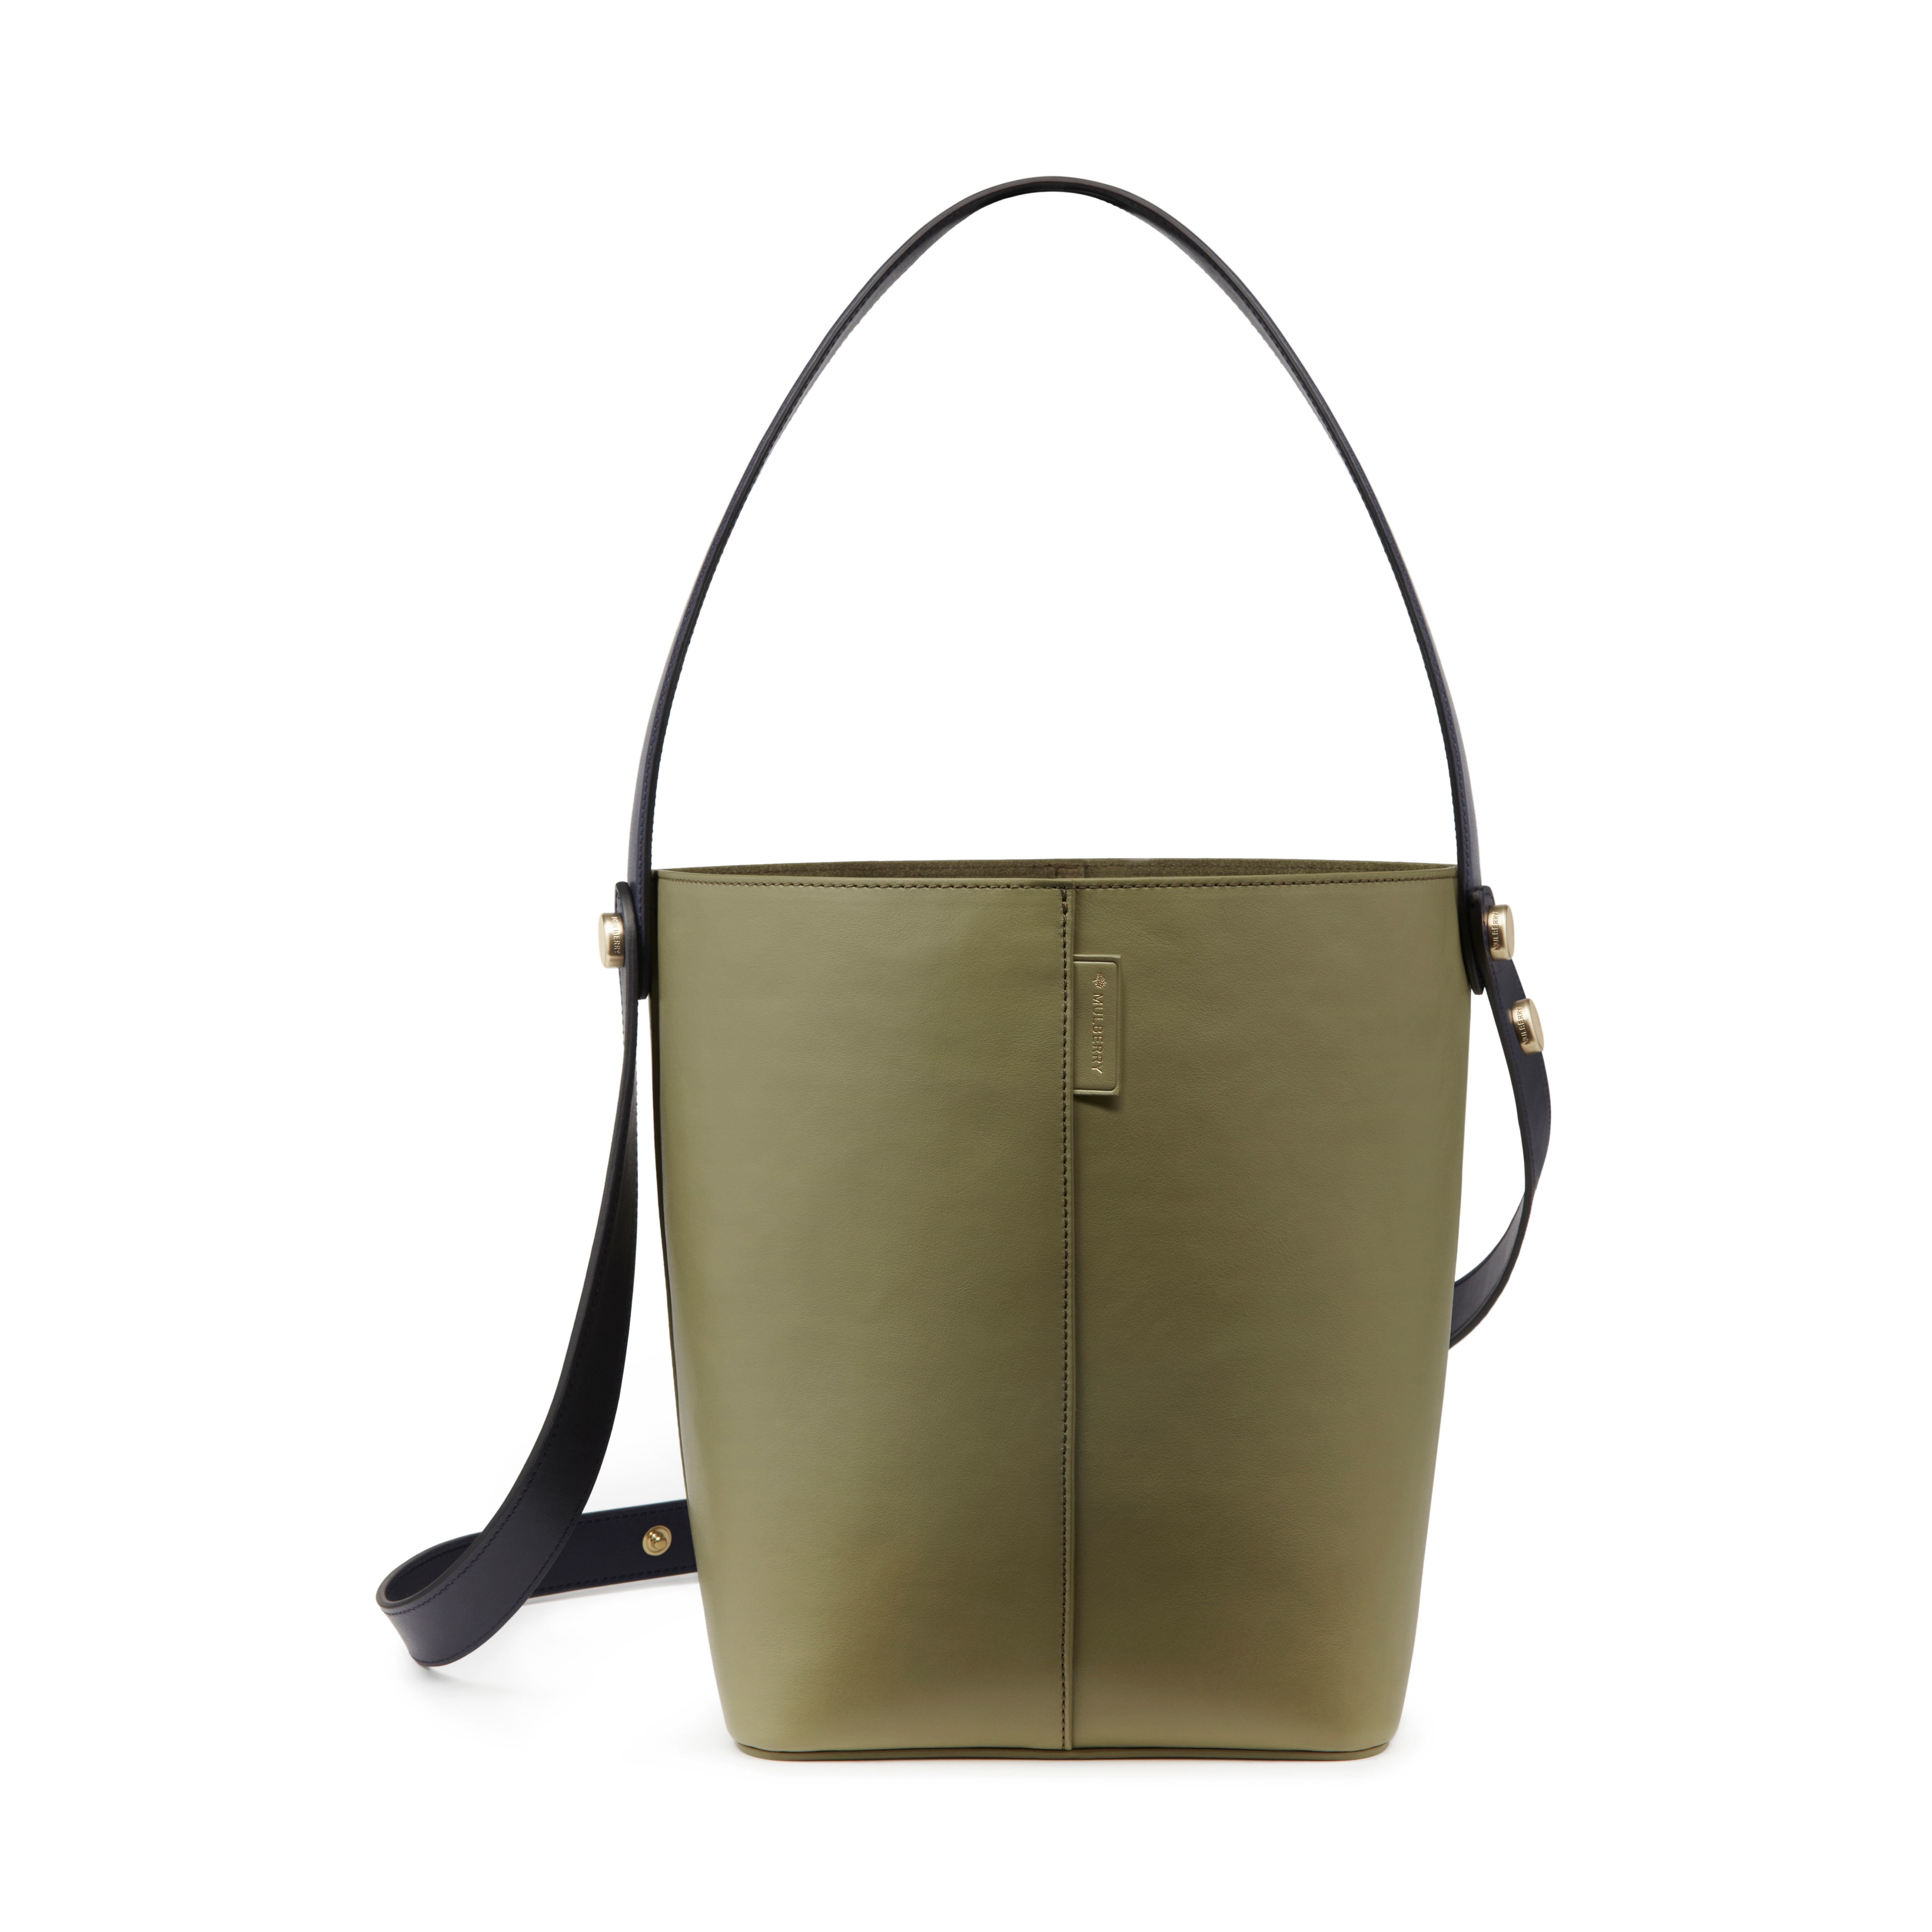 ... best price mulberry small kite leather tote in green lyst 572a6 7f604  ... f103cf95043b8